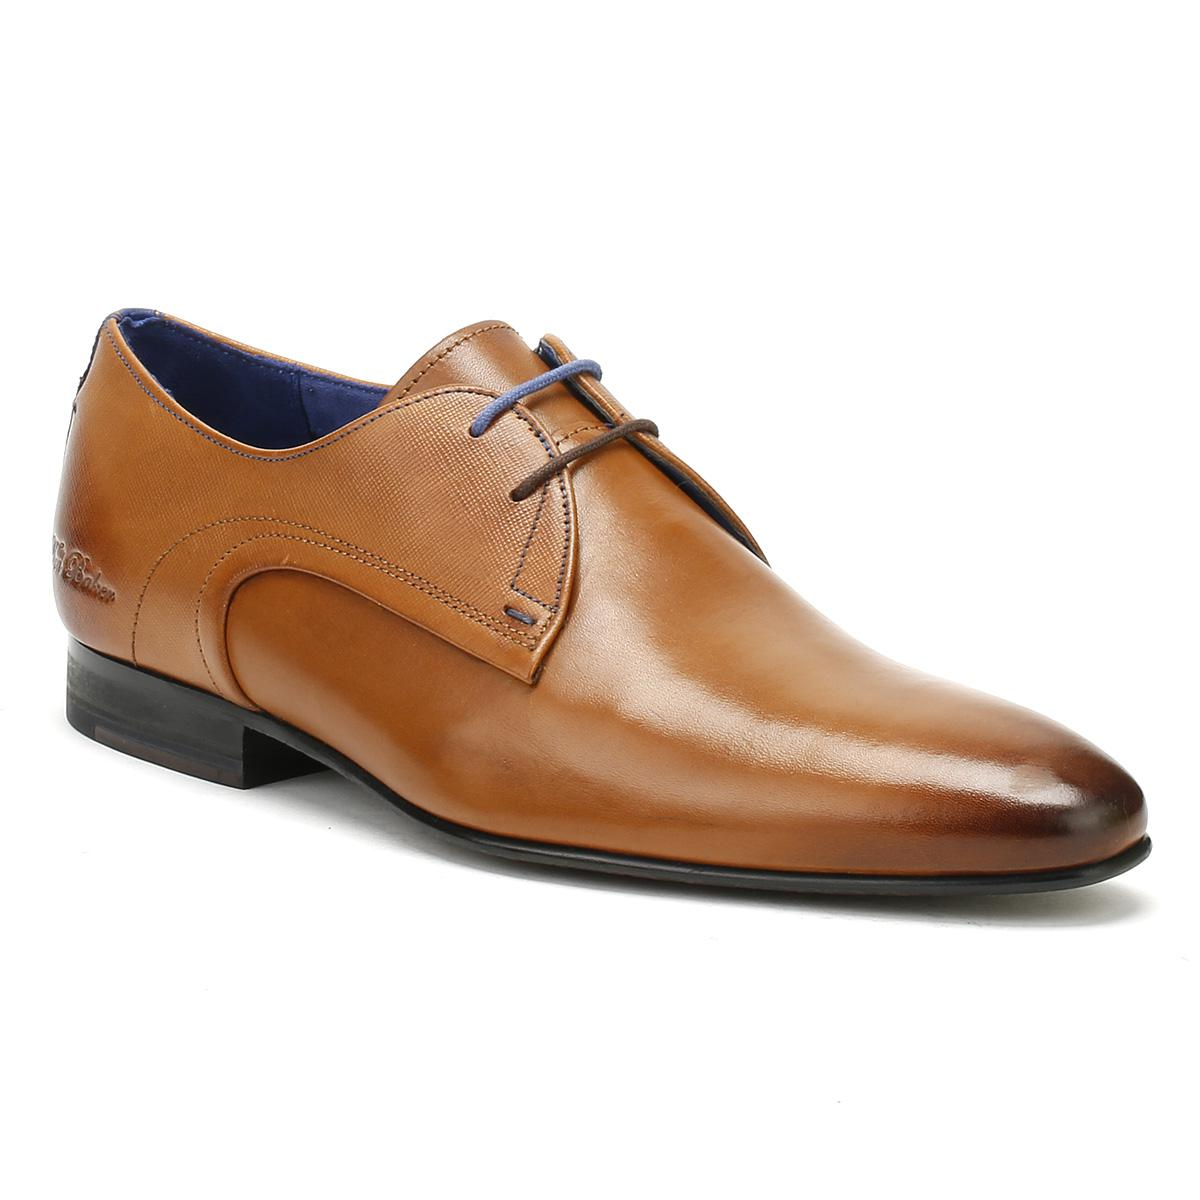 470a6dd12c2018 Lyst - Ted Baker Mens Tan Leather Peair Shoes in Brown for Men - Save 2%